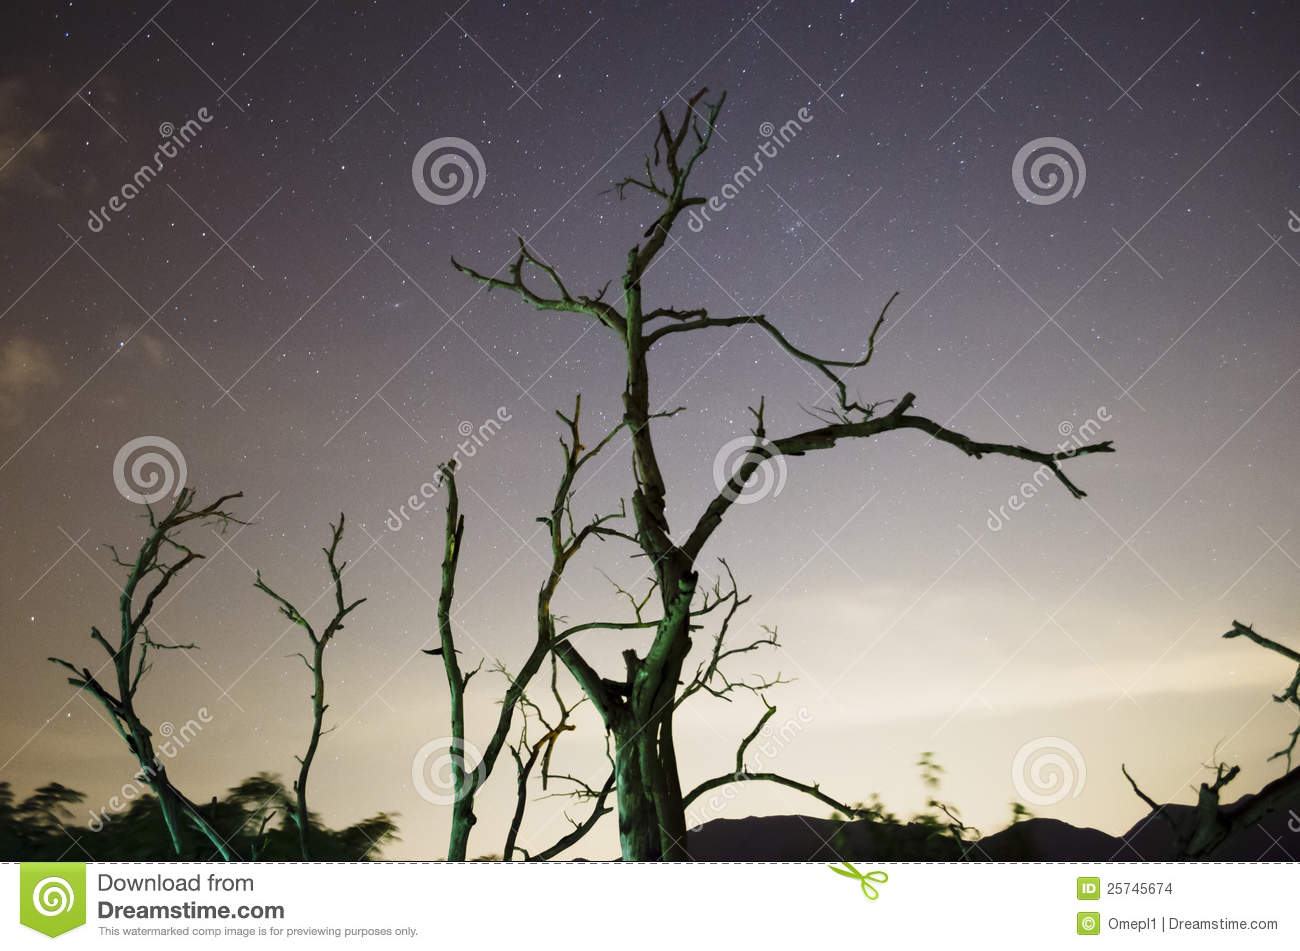 Starry Night Sky with Withered trees